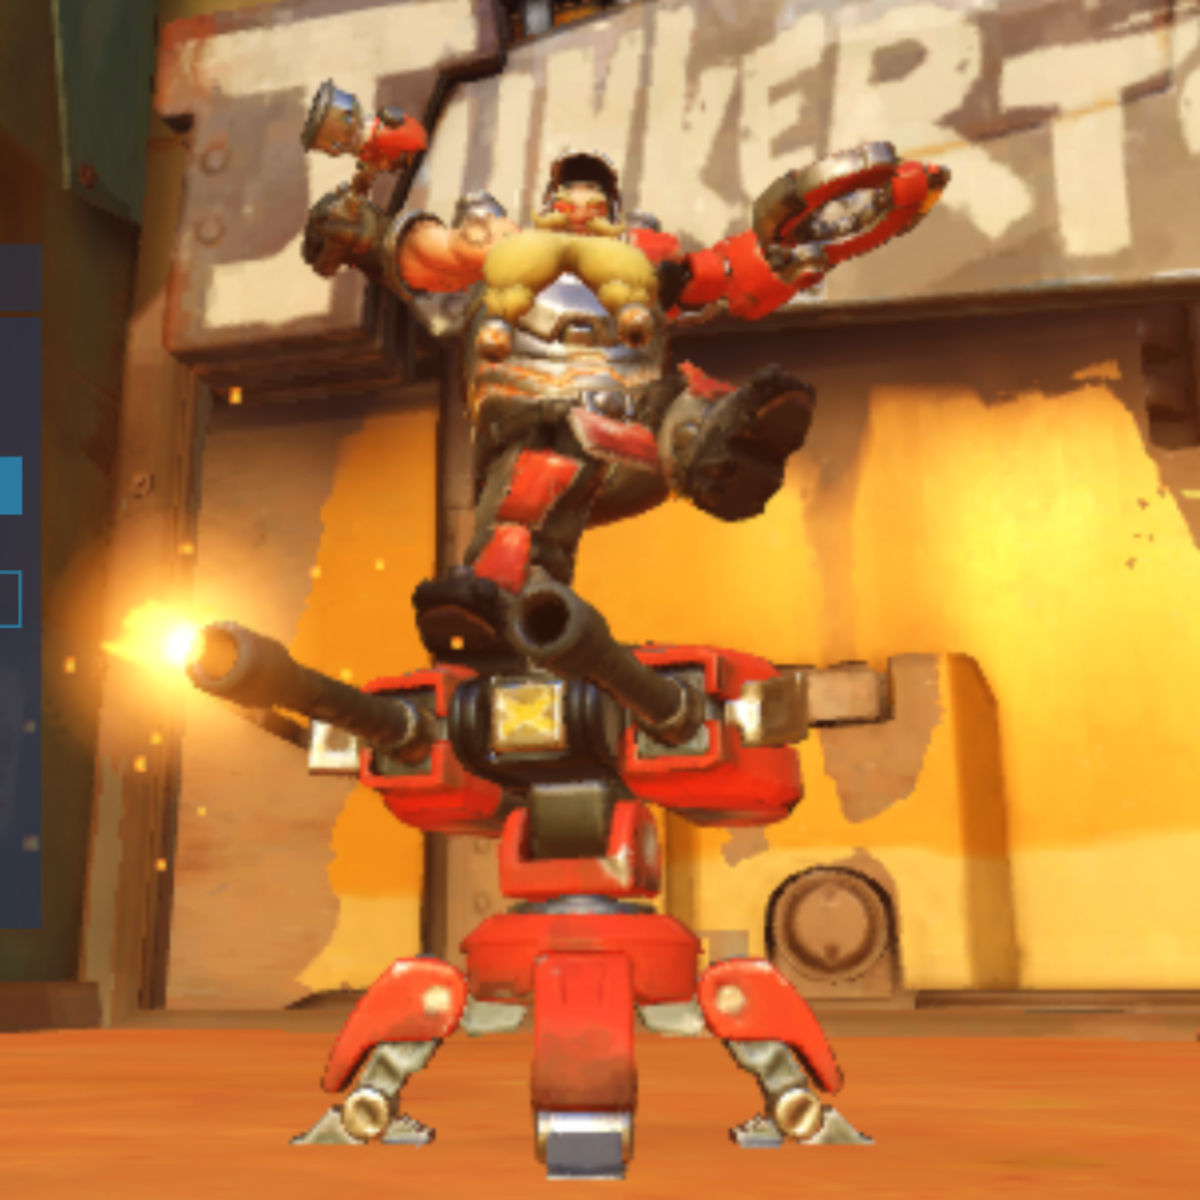 Torbjorn and his turret: still a better love story than Twilight.